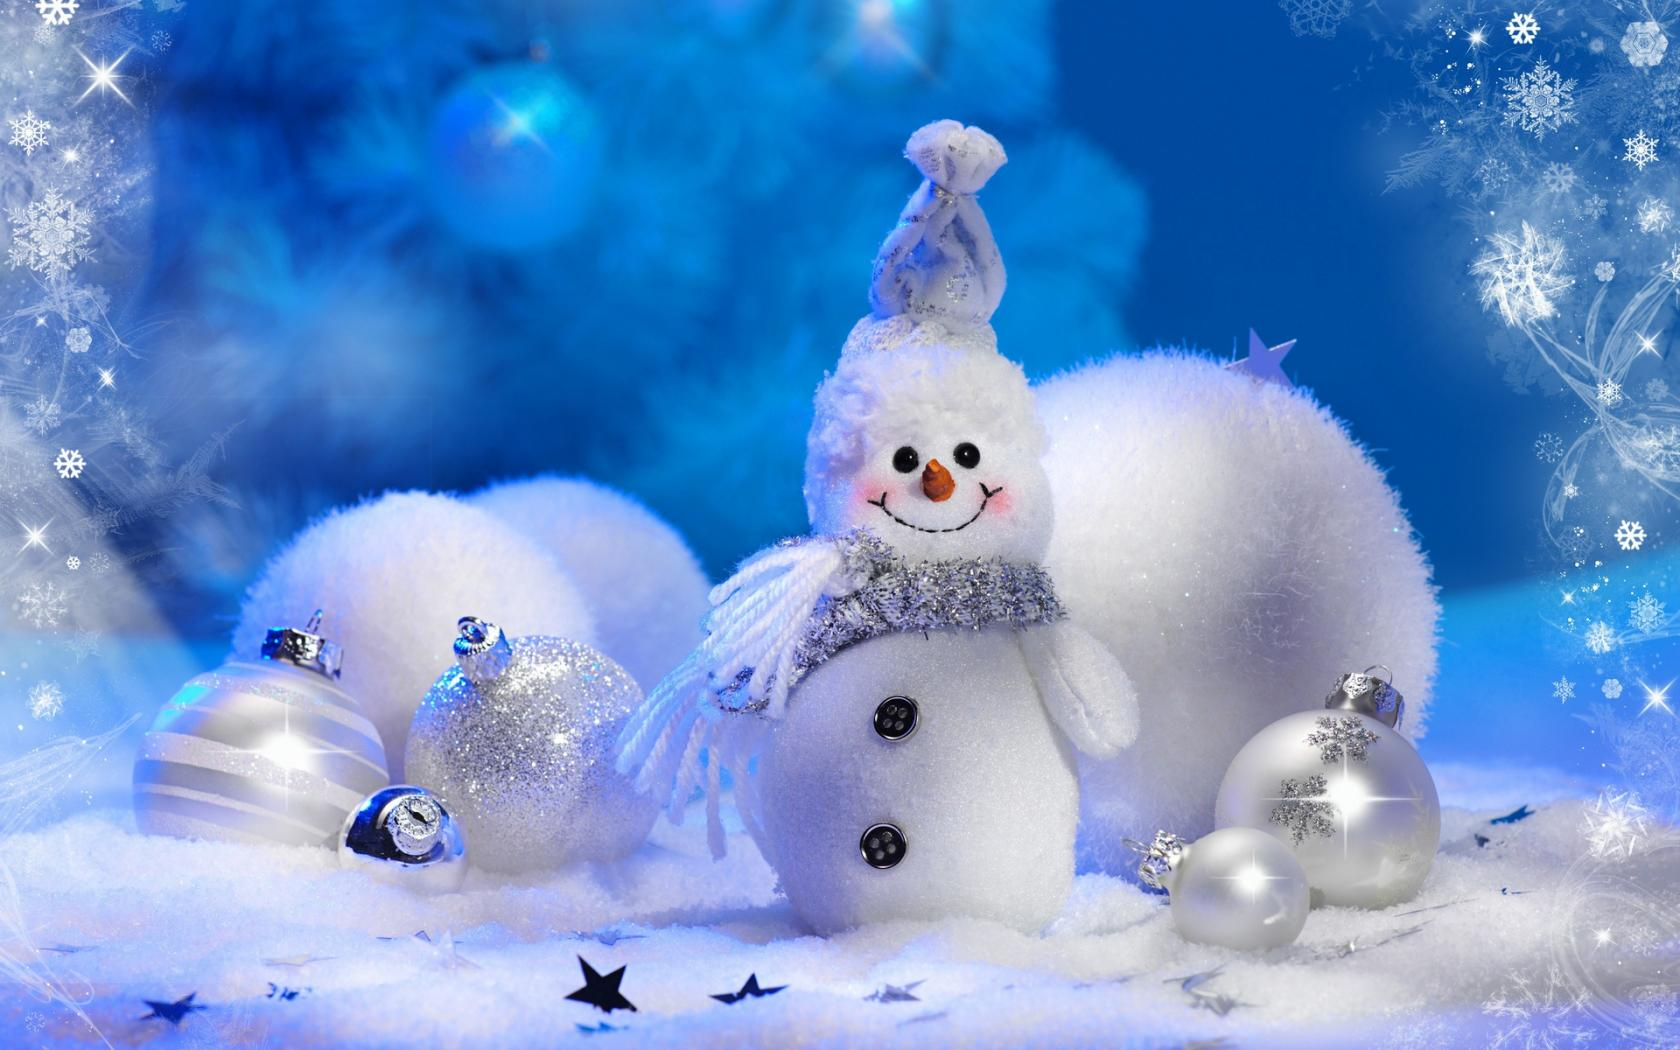 Cute Winter Ice Wallpaper 16569 Wallpaper High Resolution Wallarthd 1680x1050